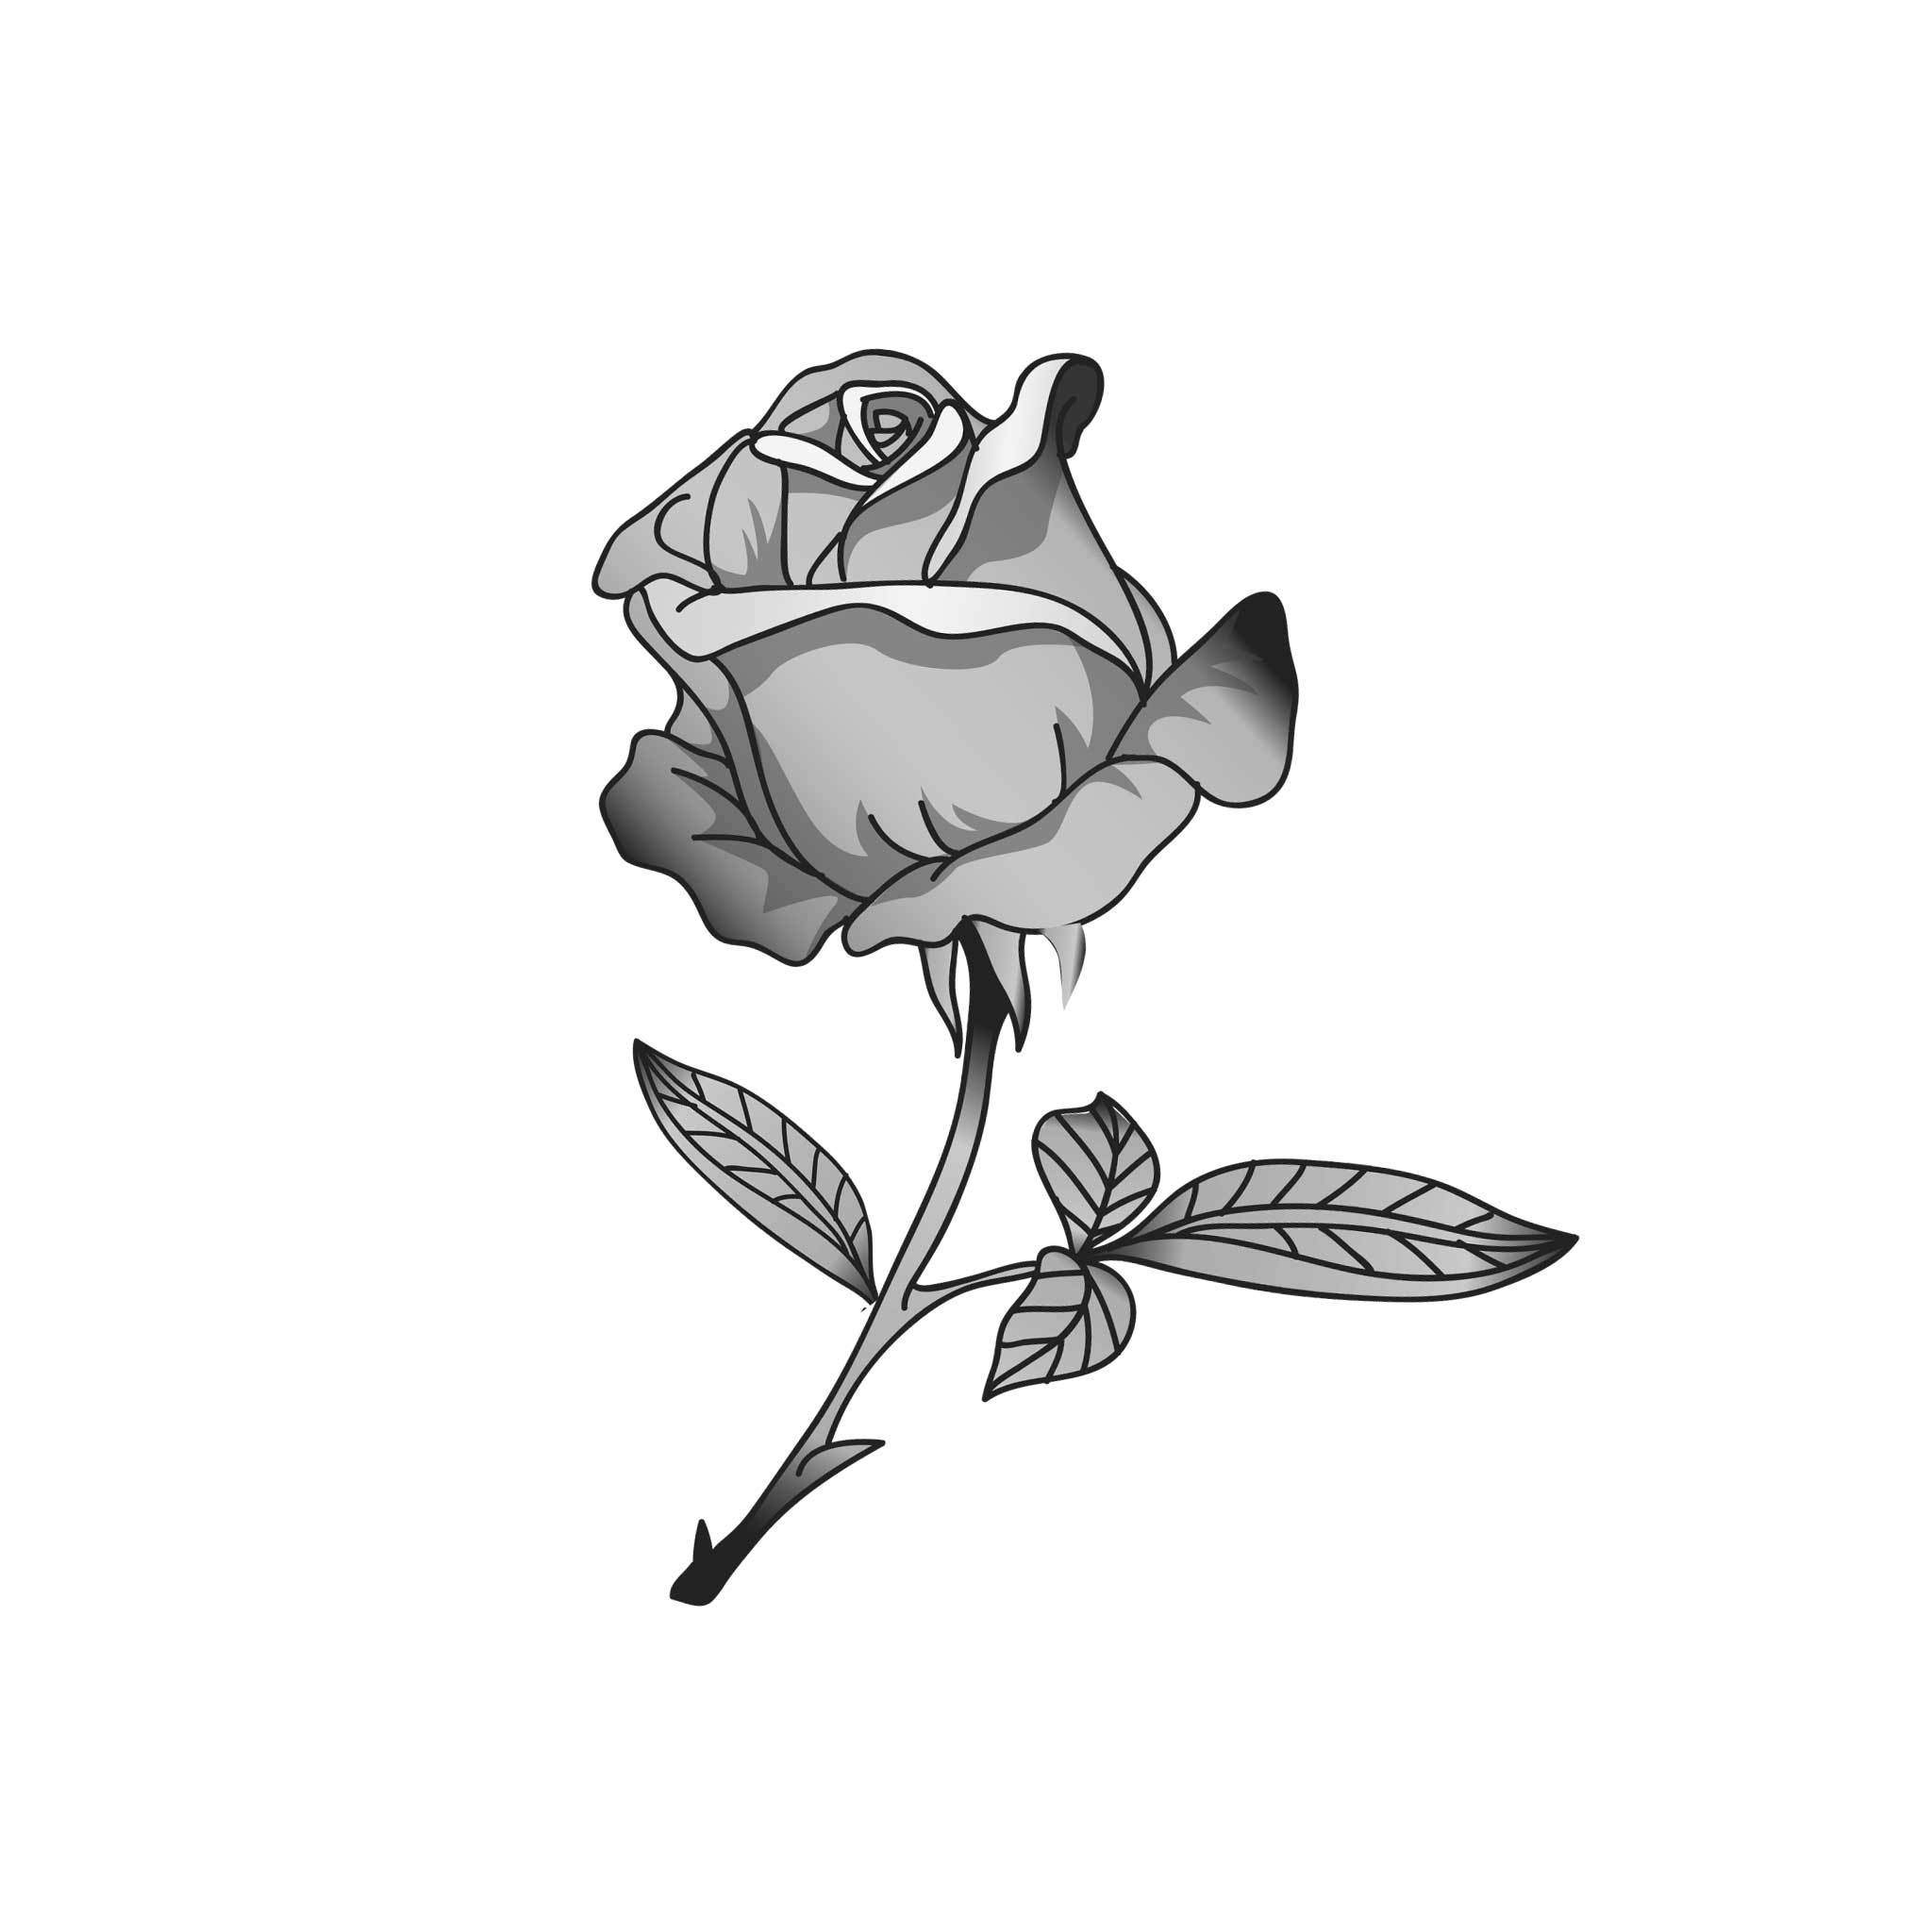 Artistic Rose Temporary Tatoo Design. Tags: Minimal, Black and White, Nature, Flowers